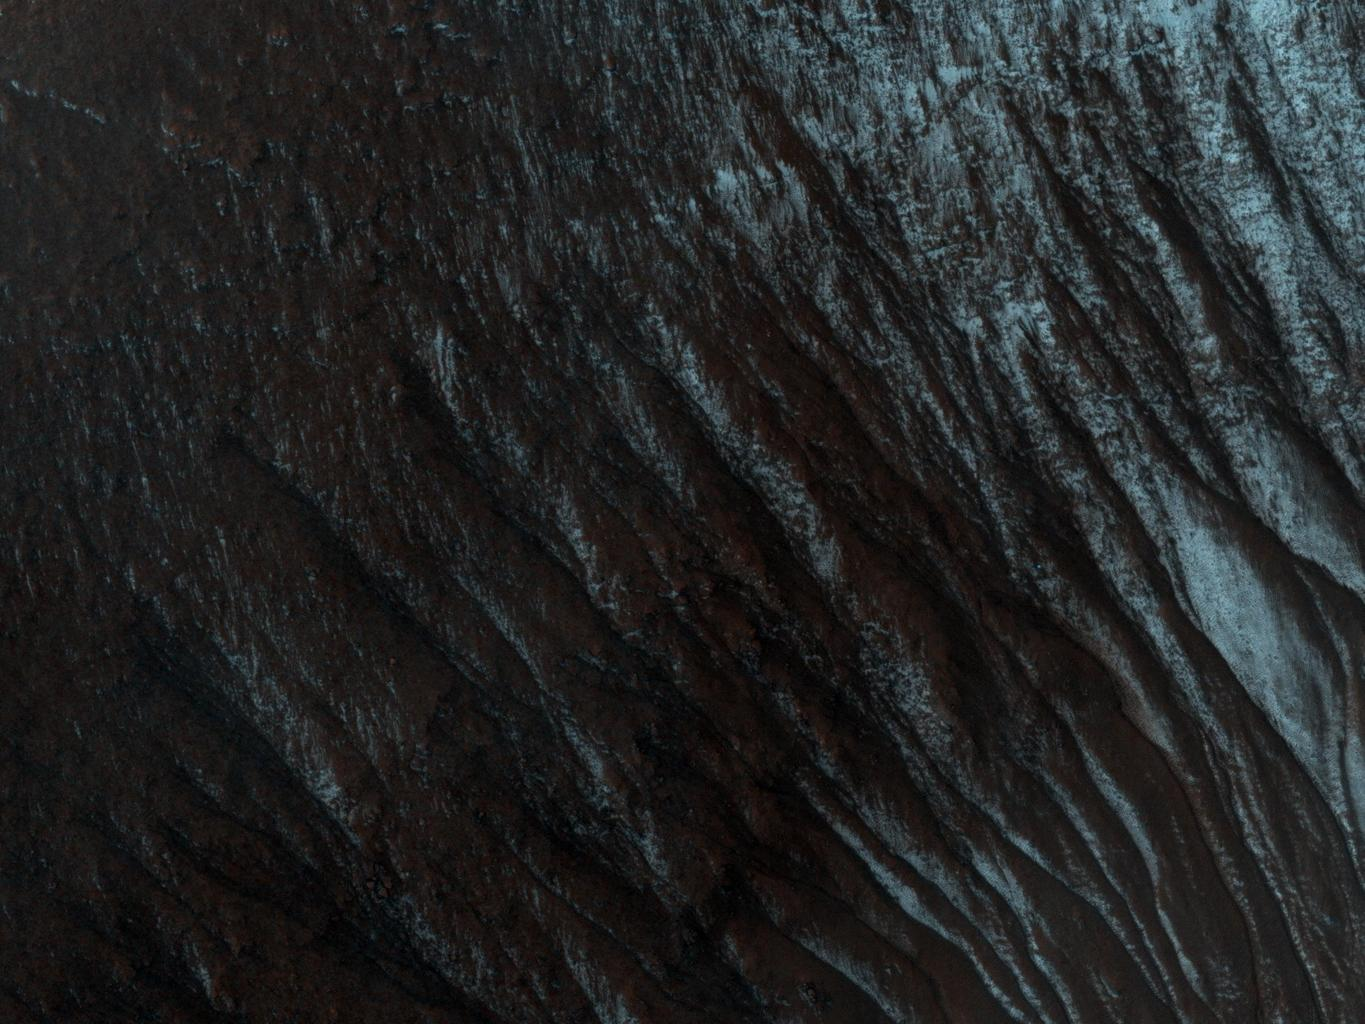 This image from NASA's Mars Reconnaissance Orbiter shows part of an unnamed crater, itself located inside the much larger Newton Crater, in Terra Sirenum. Original release date March 3, 2010.